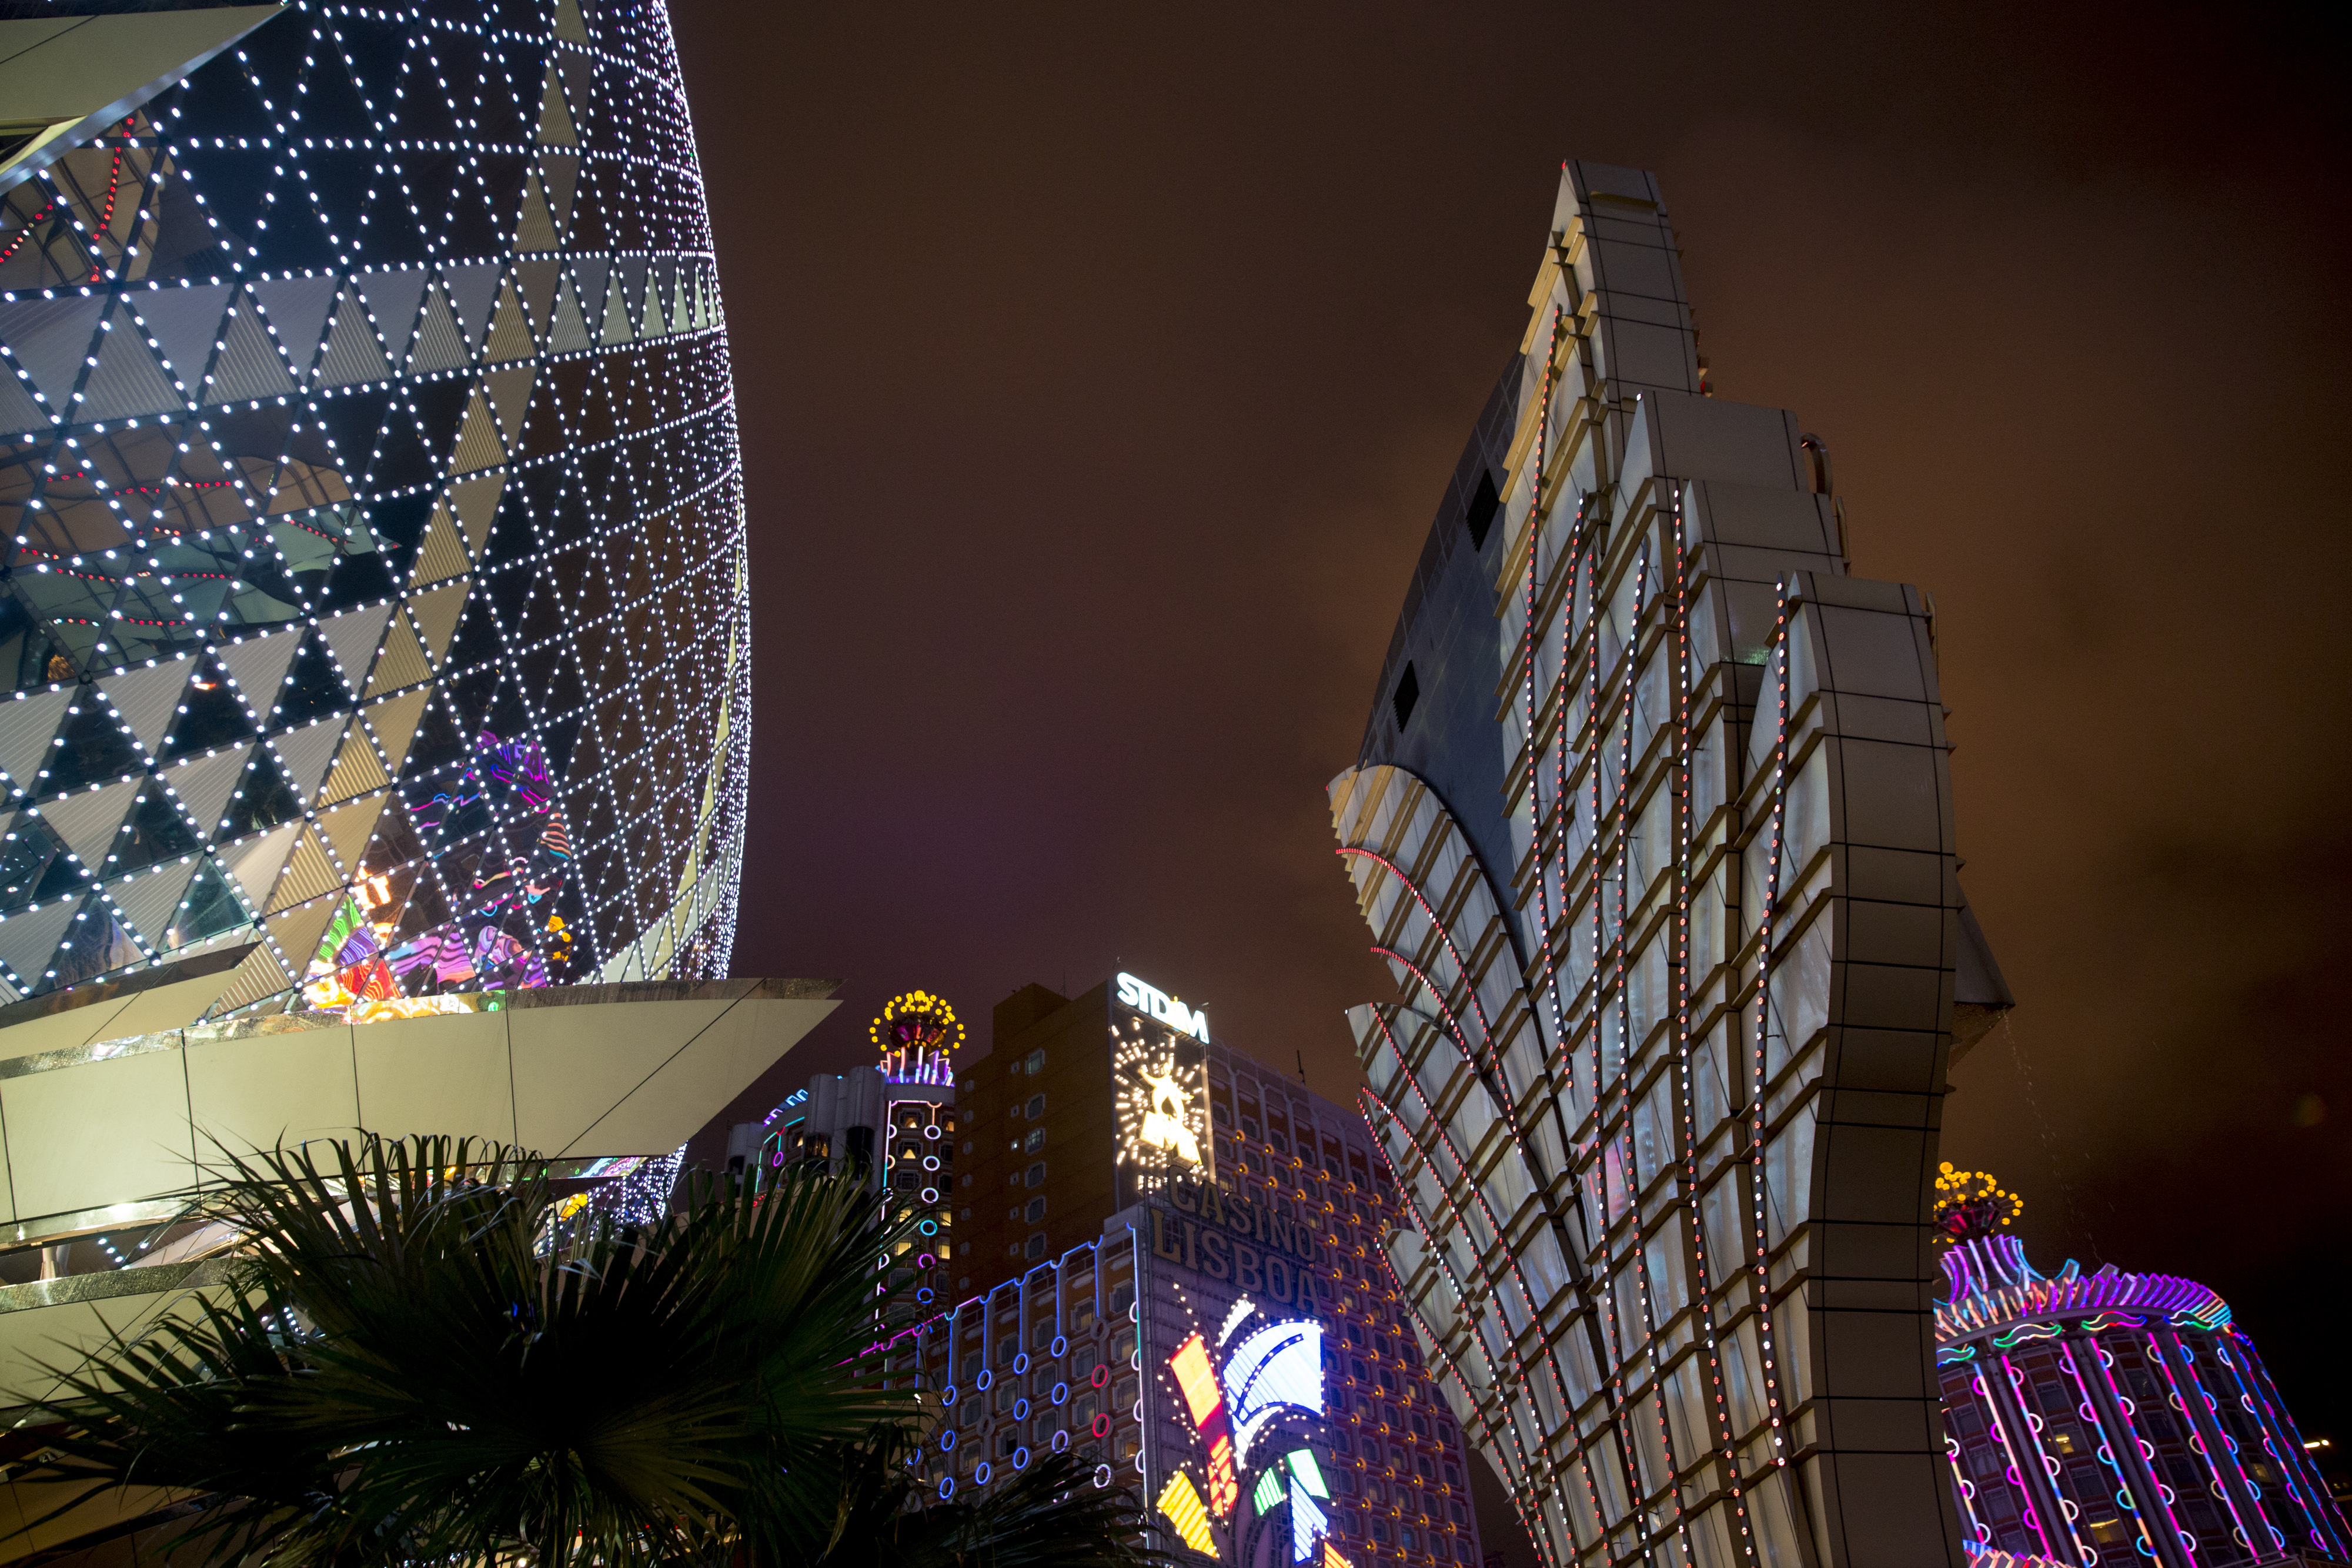 The opening of Macau's gaming market has been a tremendous success but its political development is off to a slow start. Photo: Bloomberg